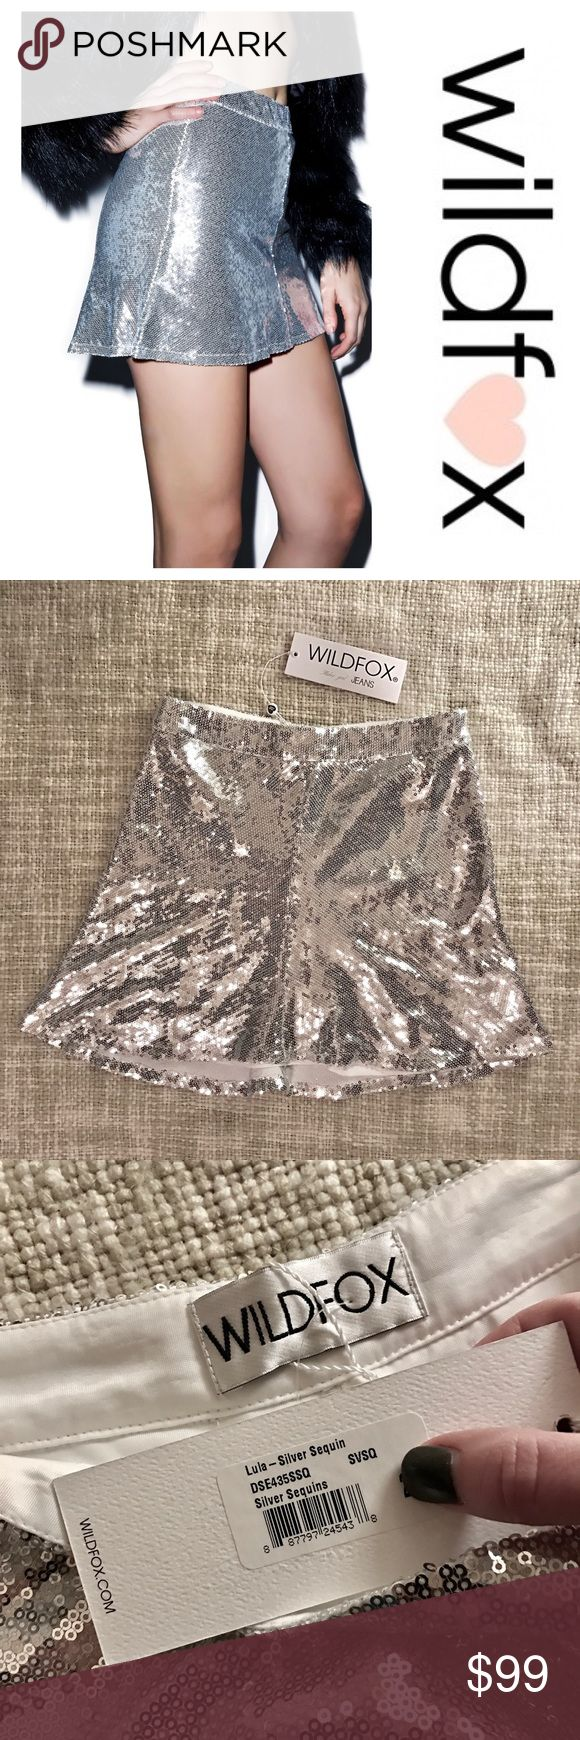 Wildfox Lula Sequin Mini Skirt Wildfox Couture Lula Sequin Skirt - skip the lines in this sparkly skirt! It's high waisted and stretchy with a slight A-line and positively covered in super shimmery sequins. The inner lining is super soft so you can party all night! It feels incredibly well made and has four vertical seams and a hidden zipper in one of them. Brand new with tags!  Materials: 97% Polyester, 3% Spandex Dry Clean Only Model wears 0 and is 5'9 Wildfox Skirts Mini